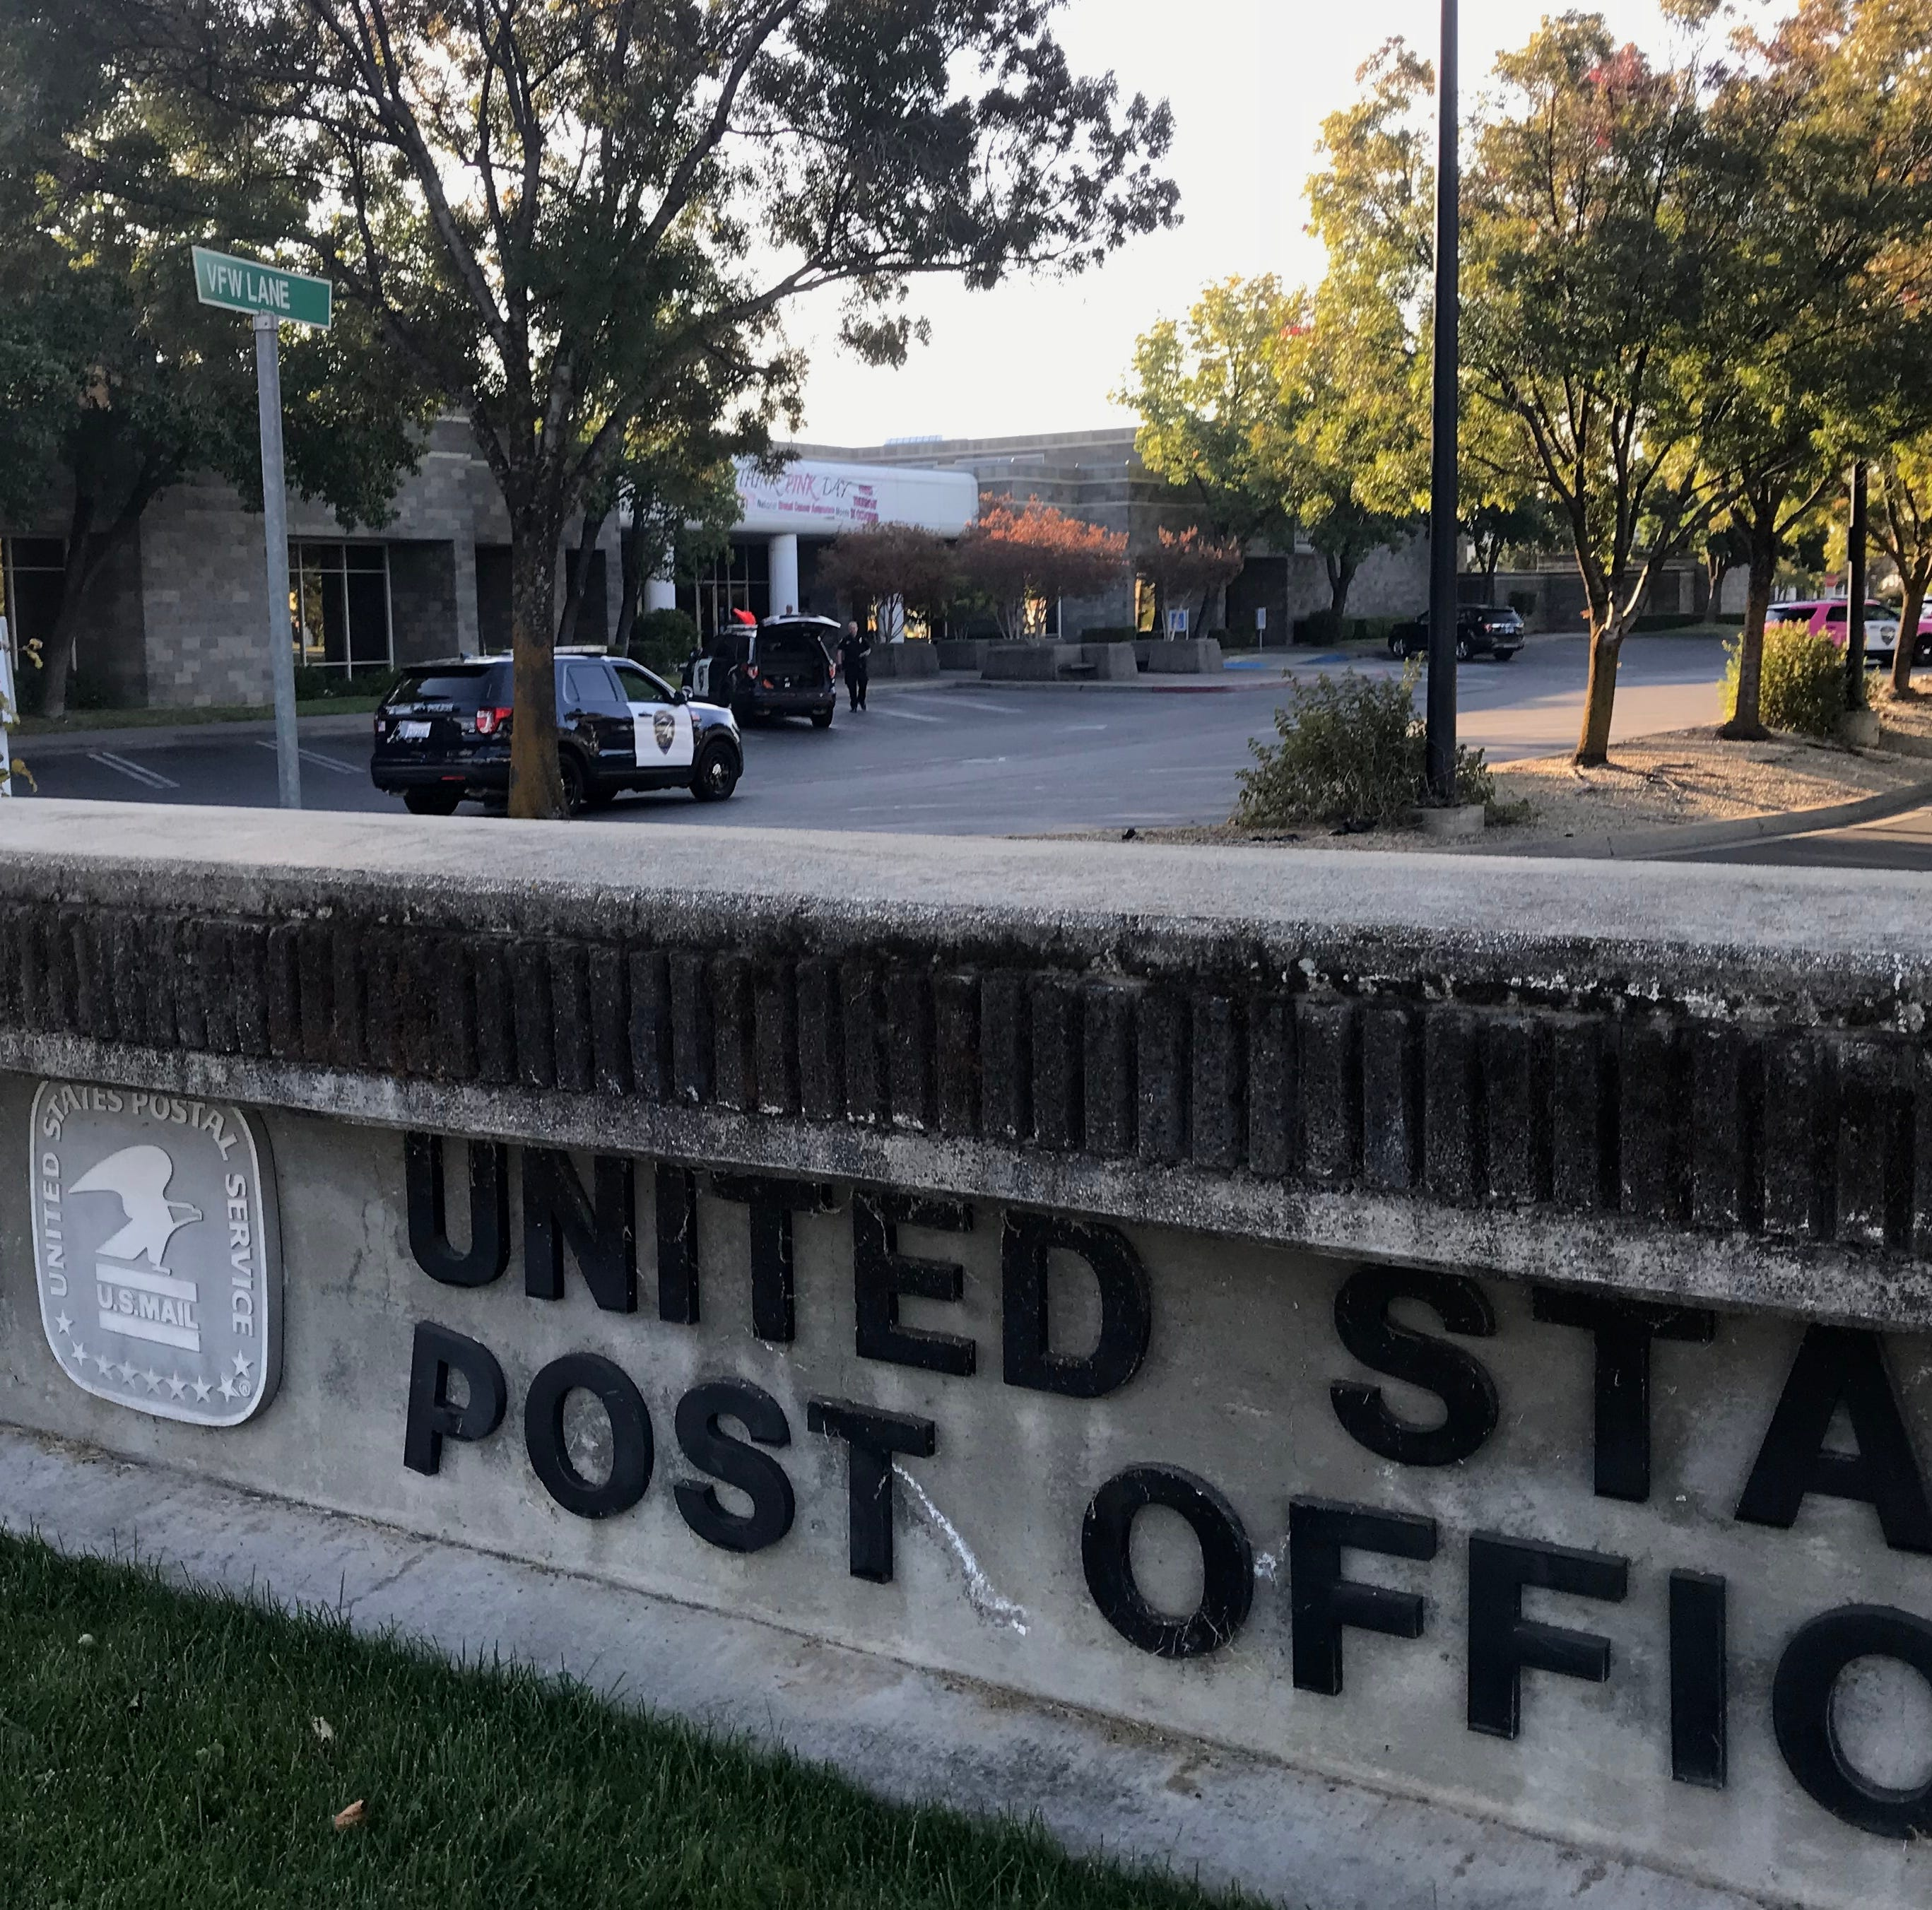 Dud hand grenade poses scare at Redding post office